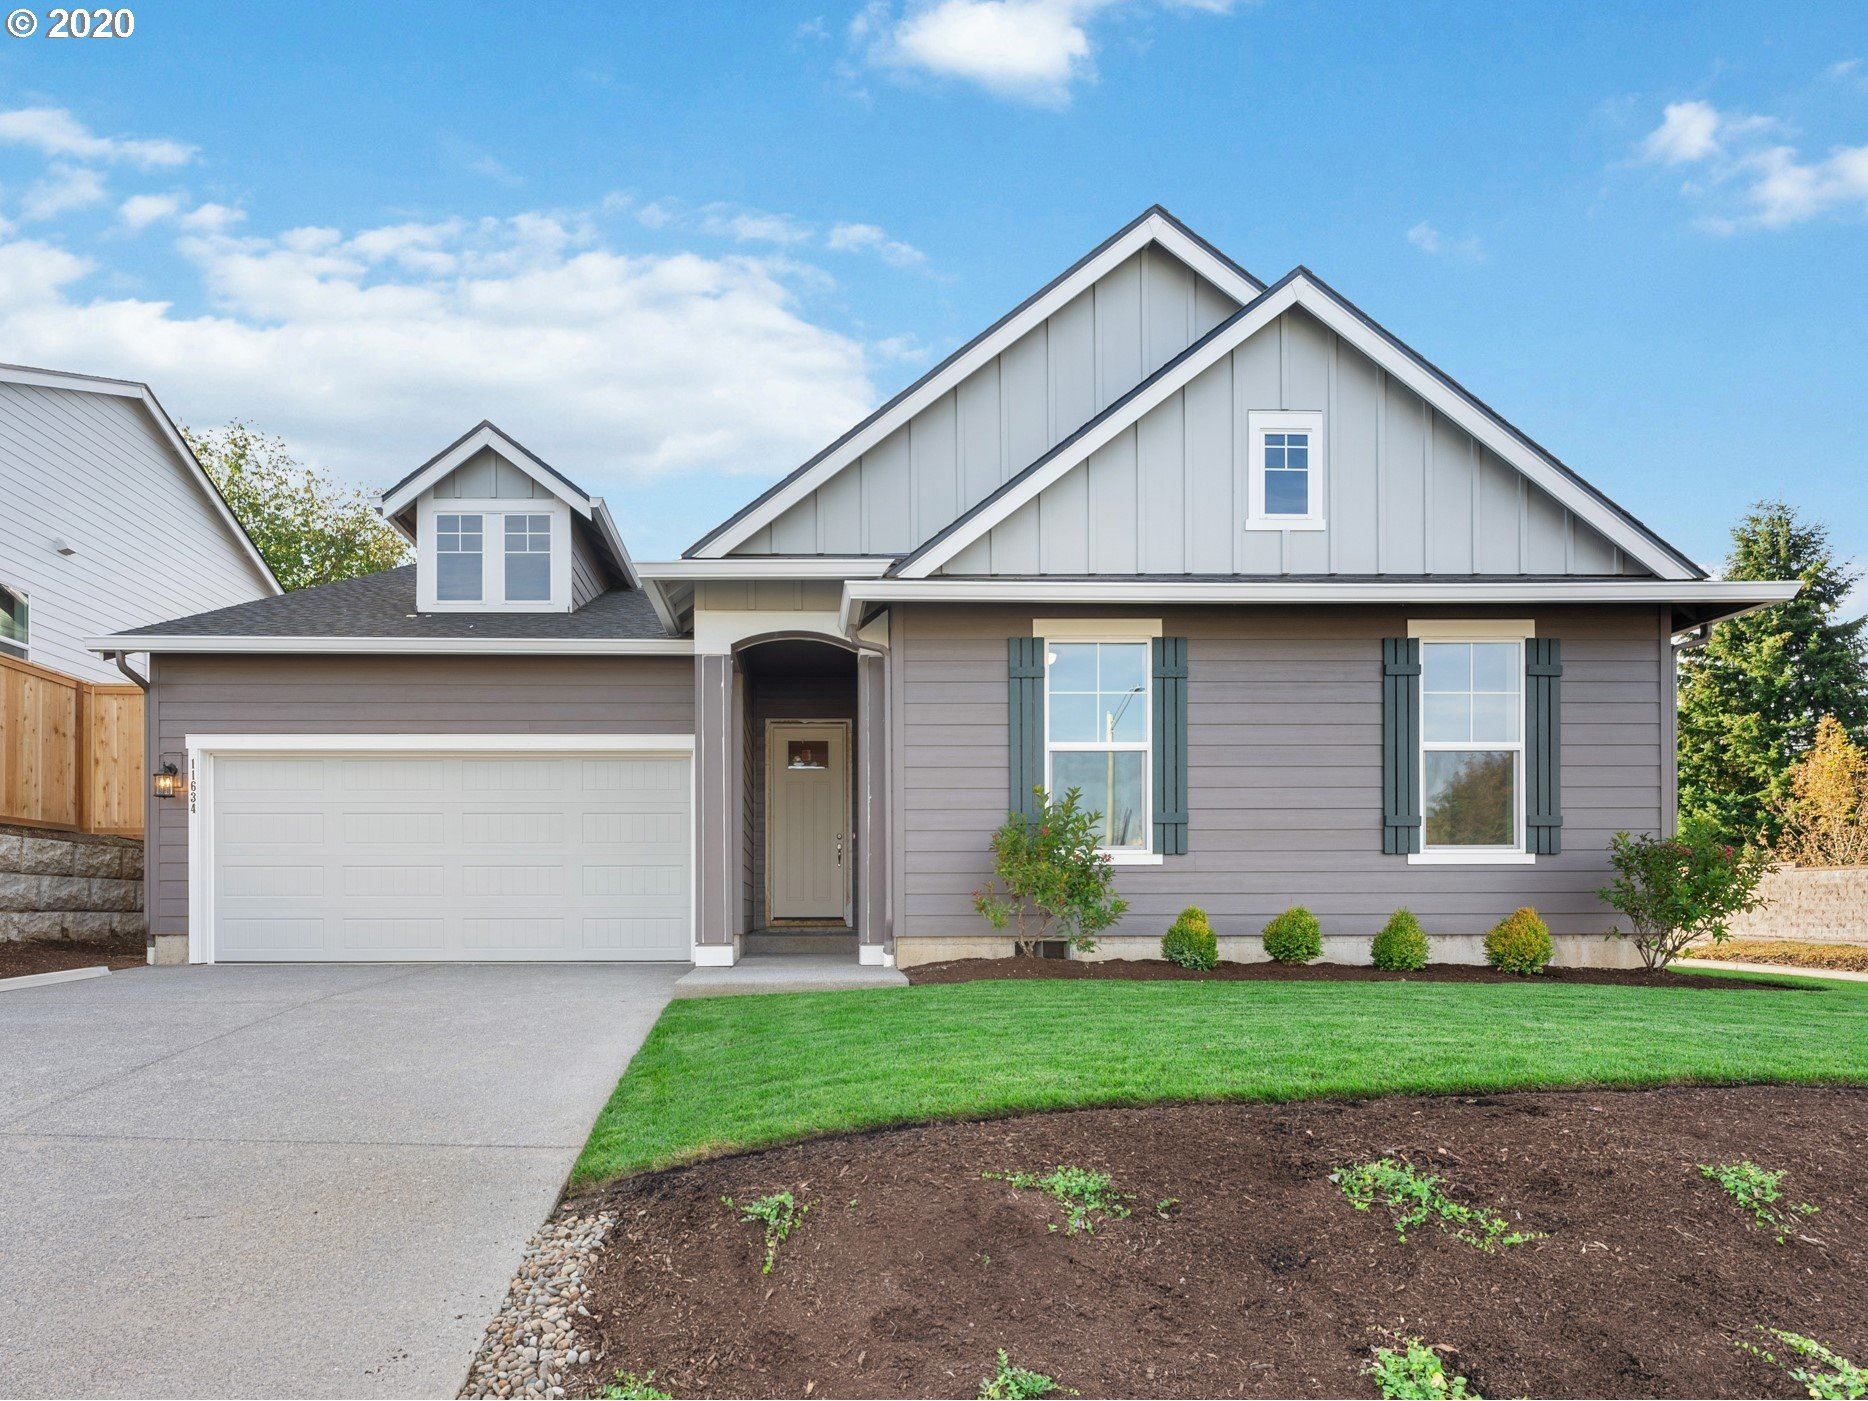 11634 NW 3RD AVE, Vancouver, WA 98685 - MLS#: 20521942